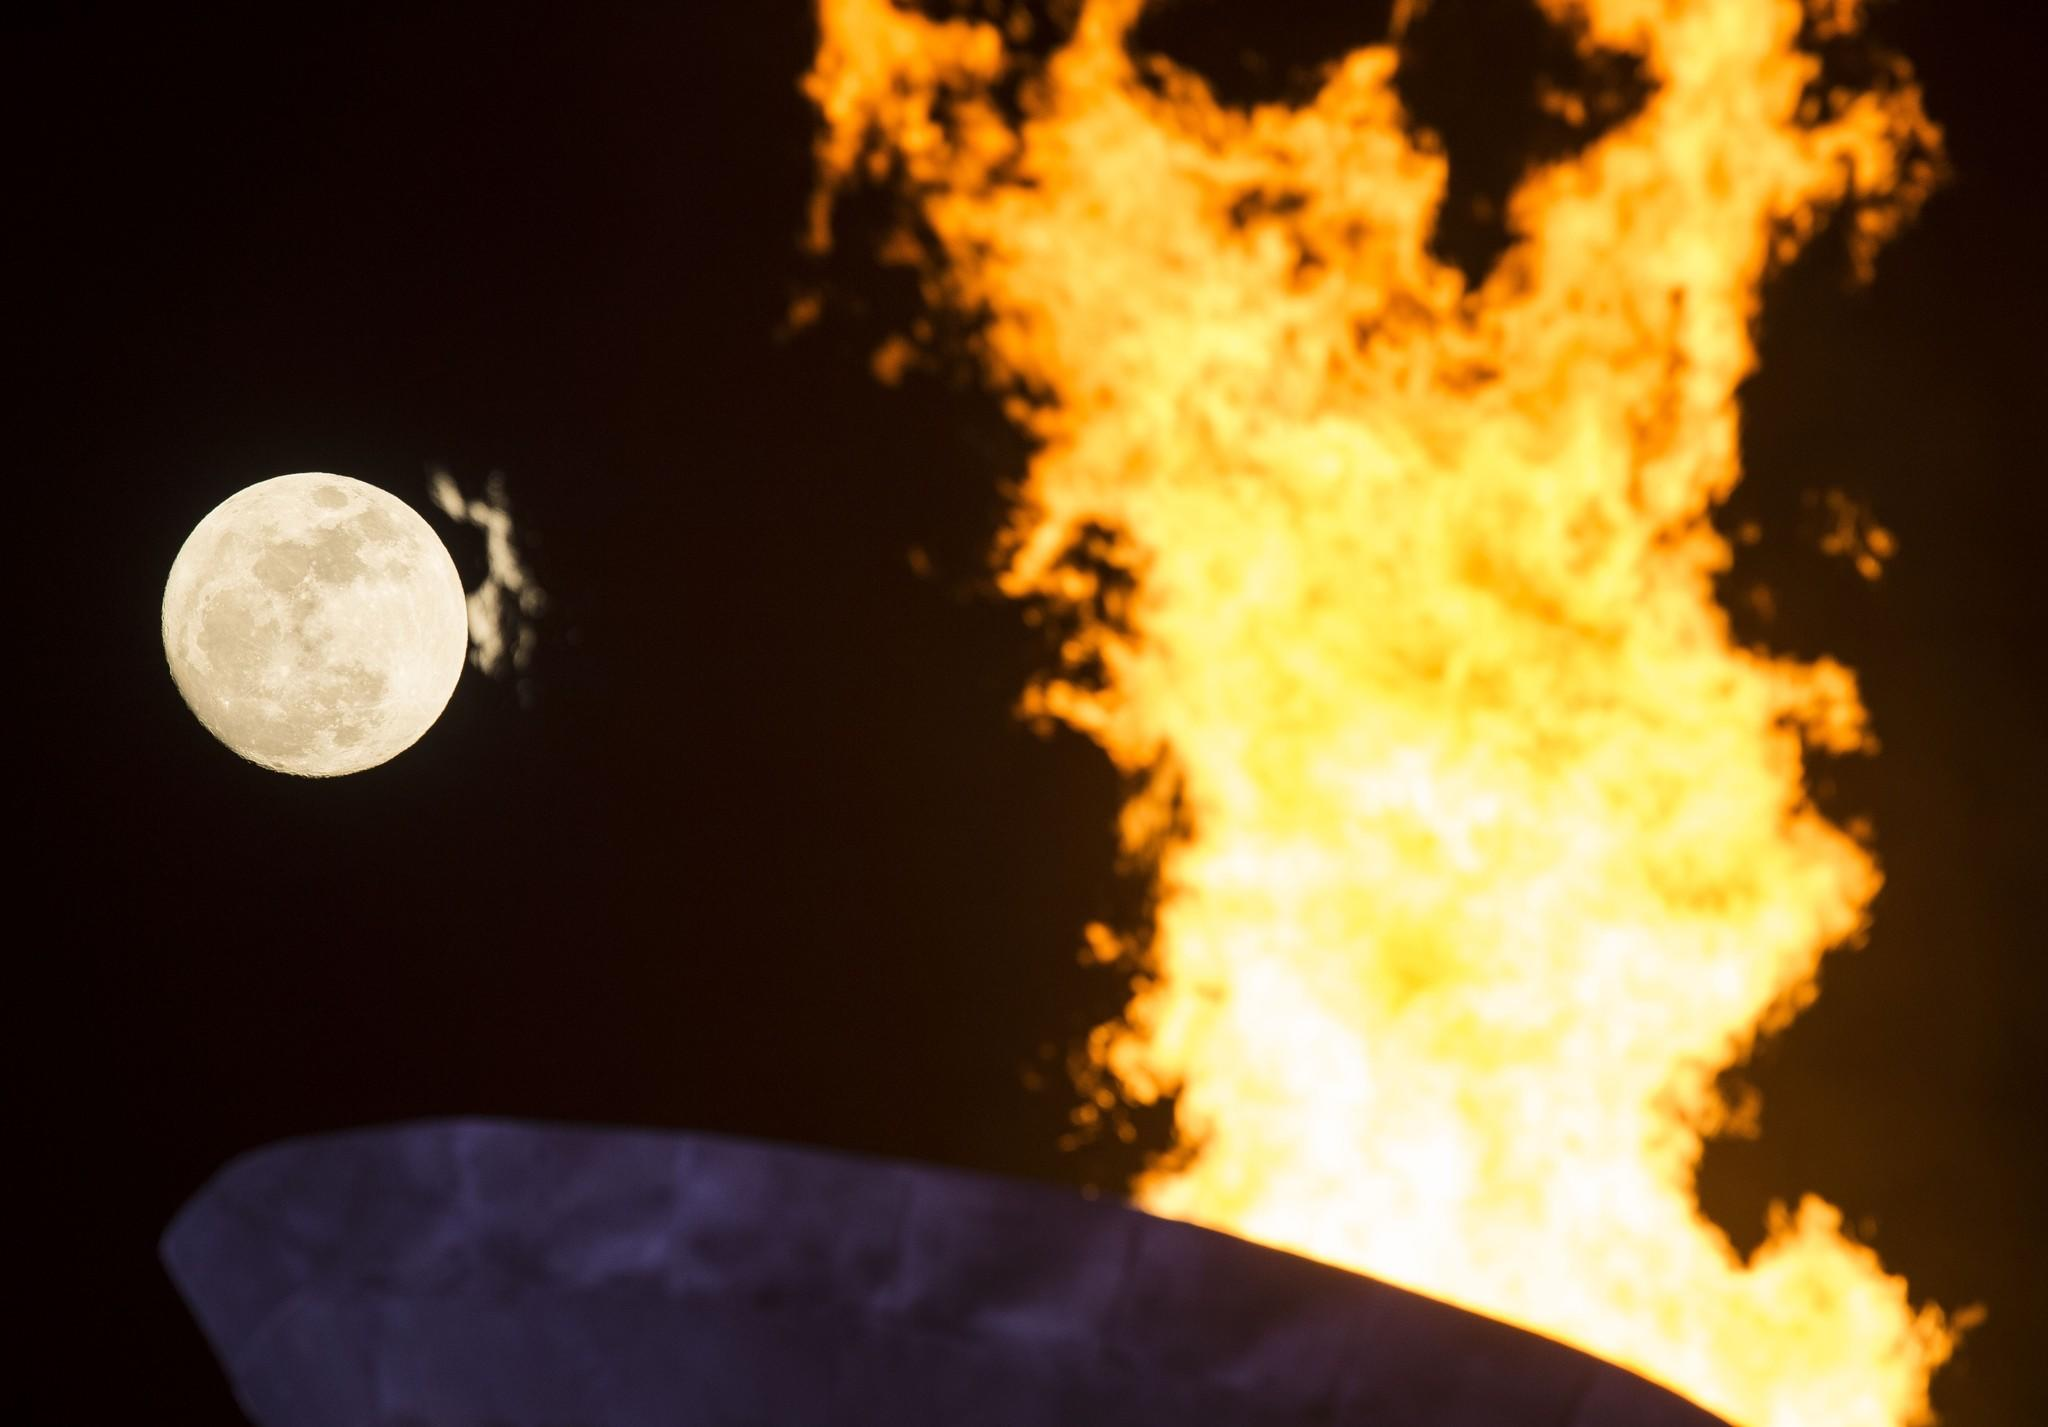 A general view of the Olympic Cauldron and flame with a full moon on day 6 of the Sochi 2014 Winter Olympics.